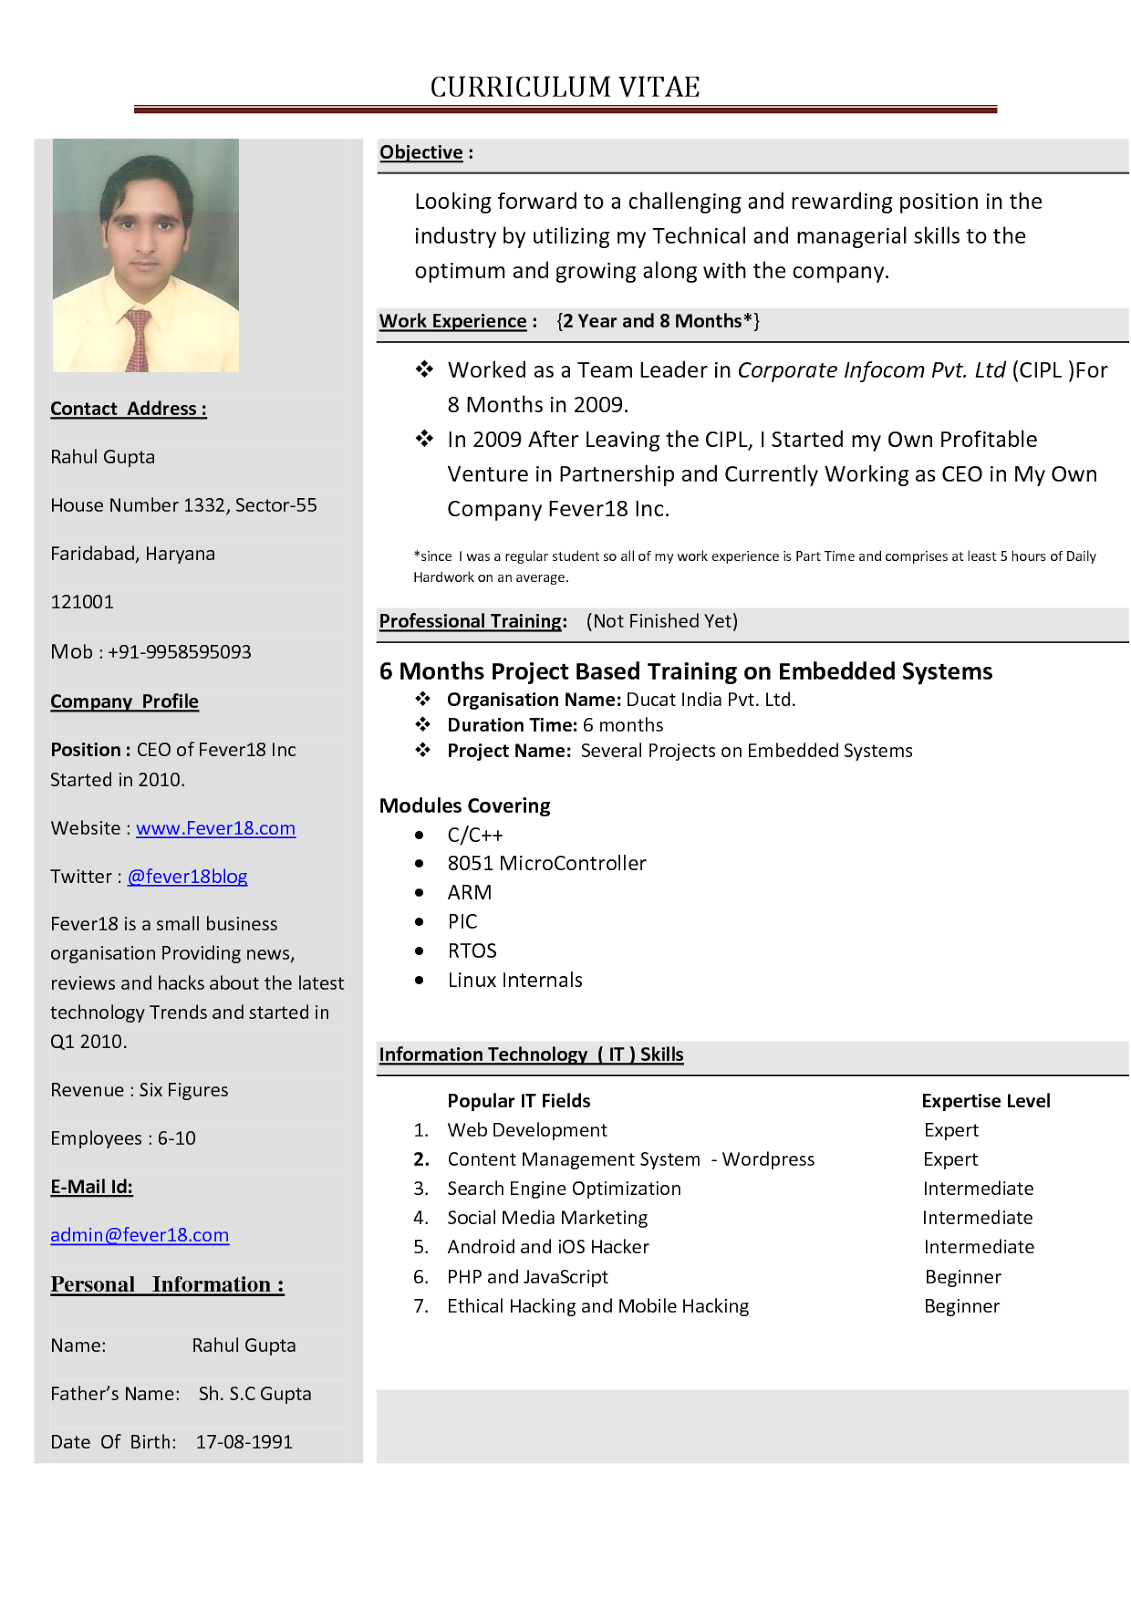 Create Professional Resumes Online For Free CV Creator CV Maker Image  Titled Create A Resume For  How To Make An Online Resume